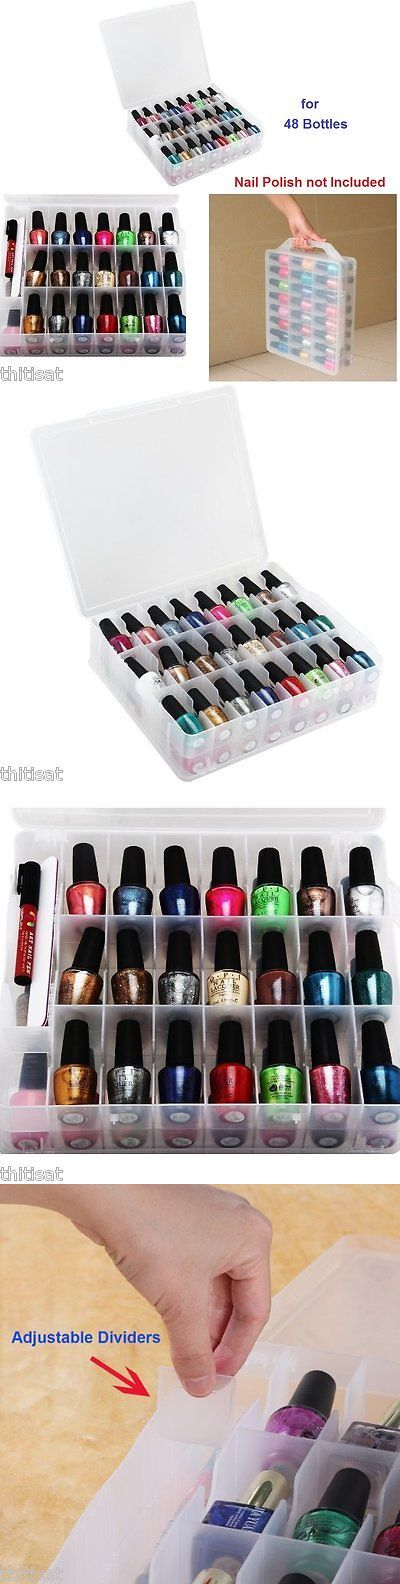 Nail Practice and Display: Organizer Nail Polish Holder Display Counter Case Storage 48 Bottles Diy Salon -> BUY IT NOW ONLY: $33.99 on eBay!